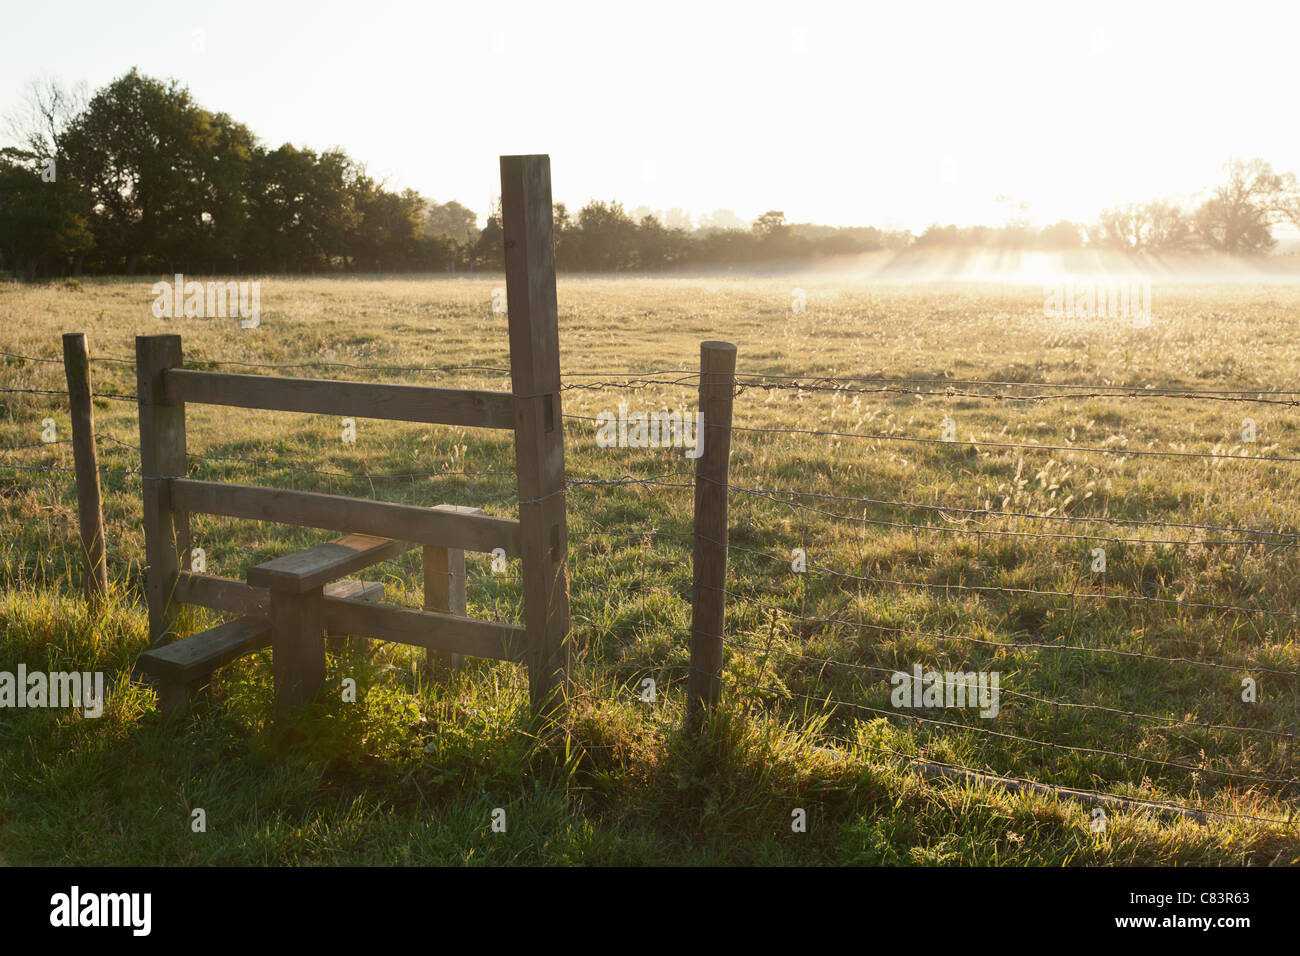 Wooden fence in grassy field - Stock Image